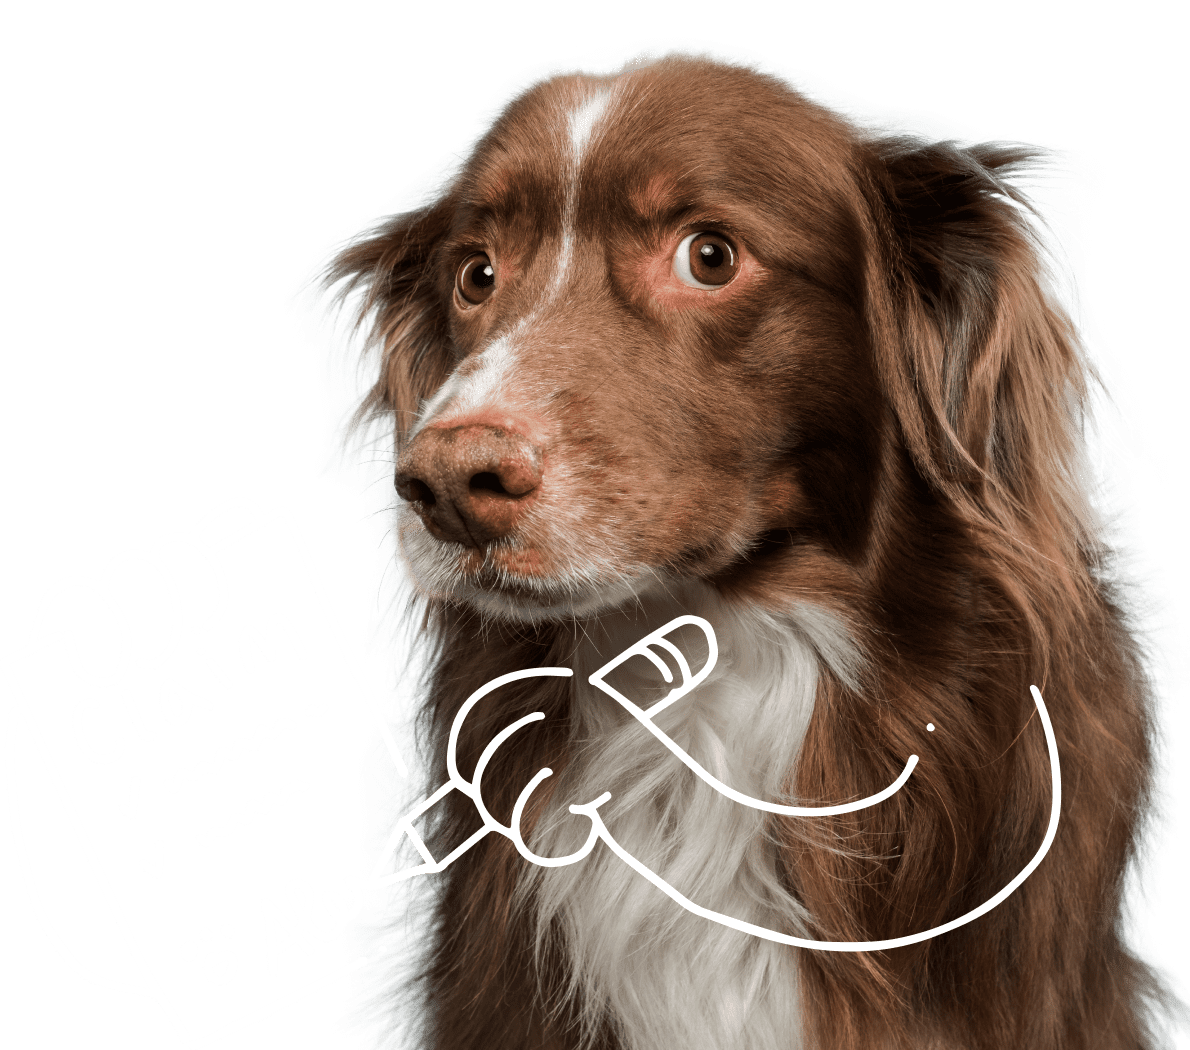 Brown dog writing a pet insurance claim